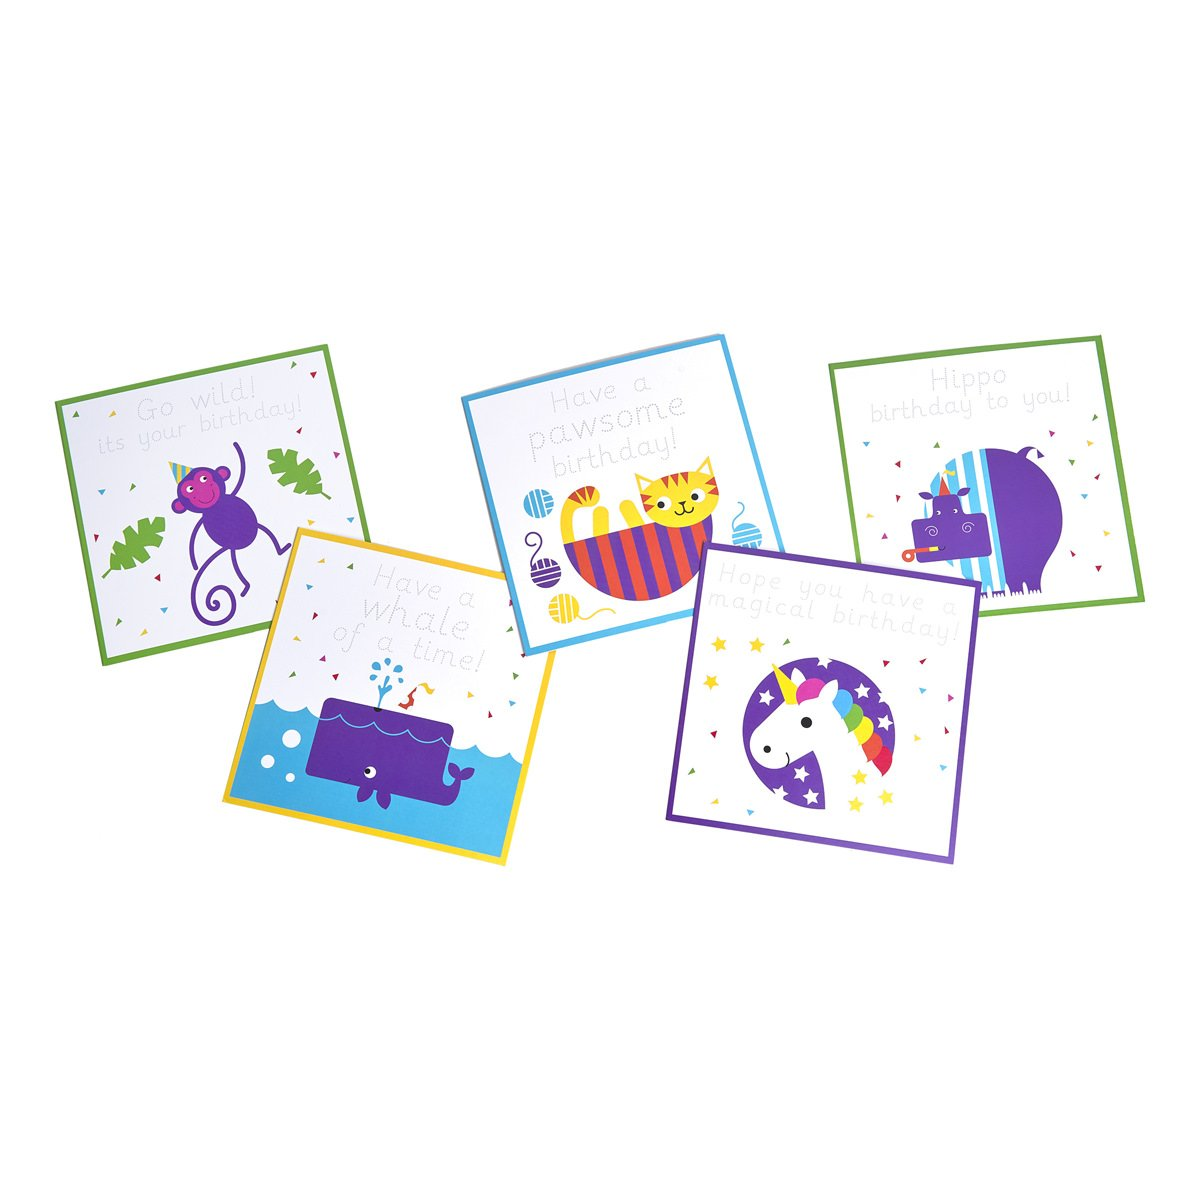 Ages 3-7: Love Writing Co. Pack of 10 Handwriting Practice Birthday Cards 1